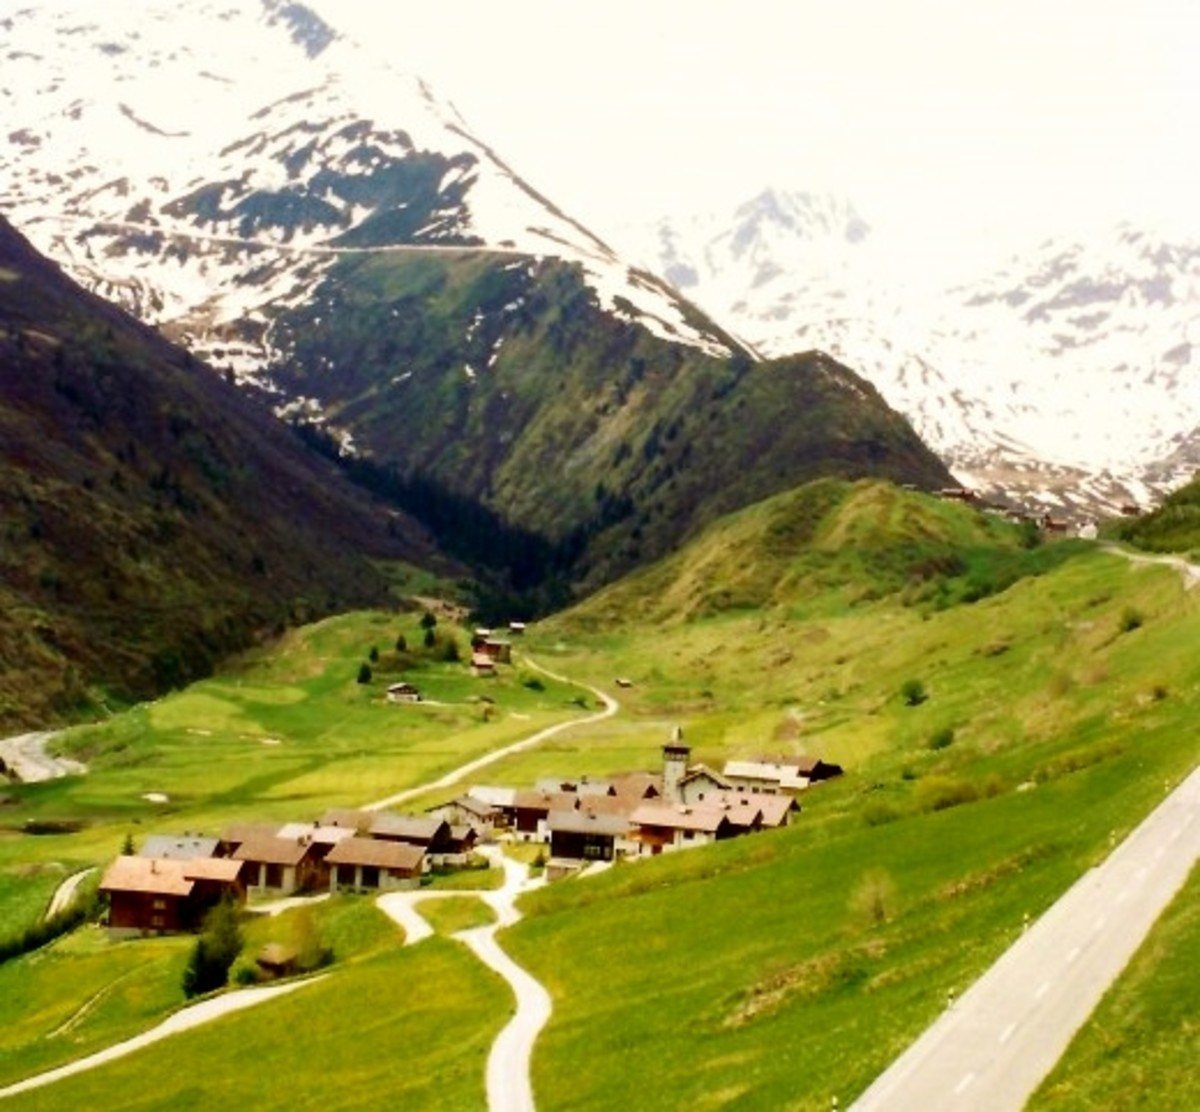 Clusters of homes seen scattered throughout the mountainous region.